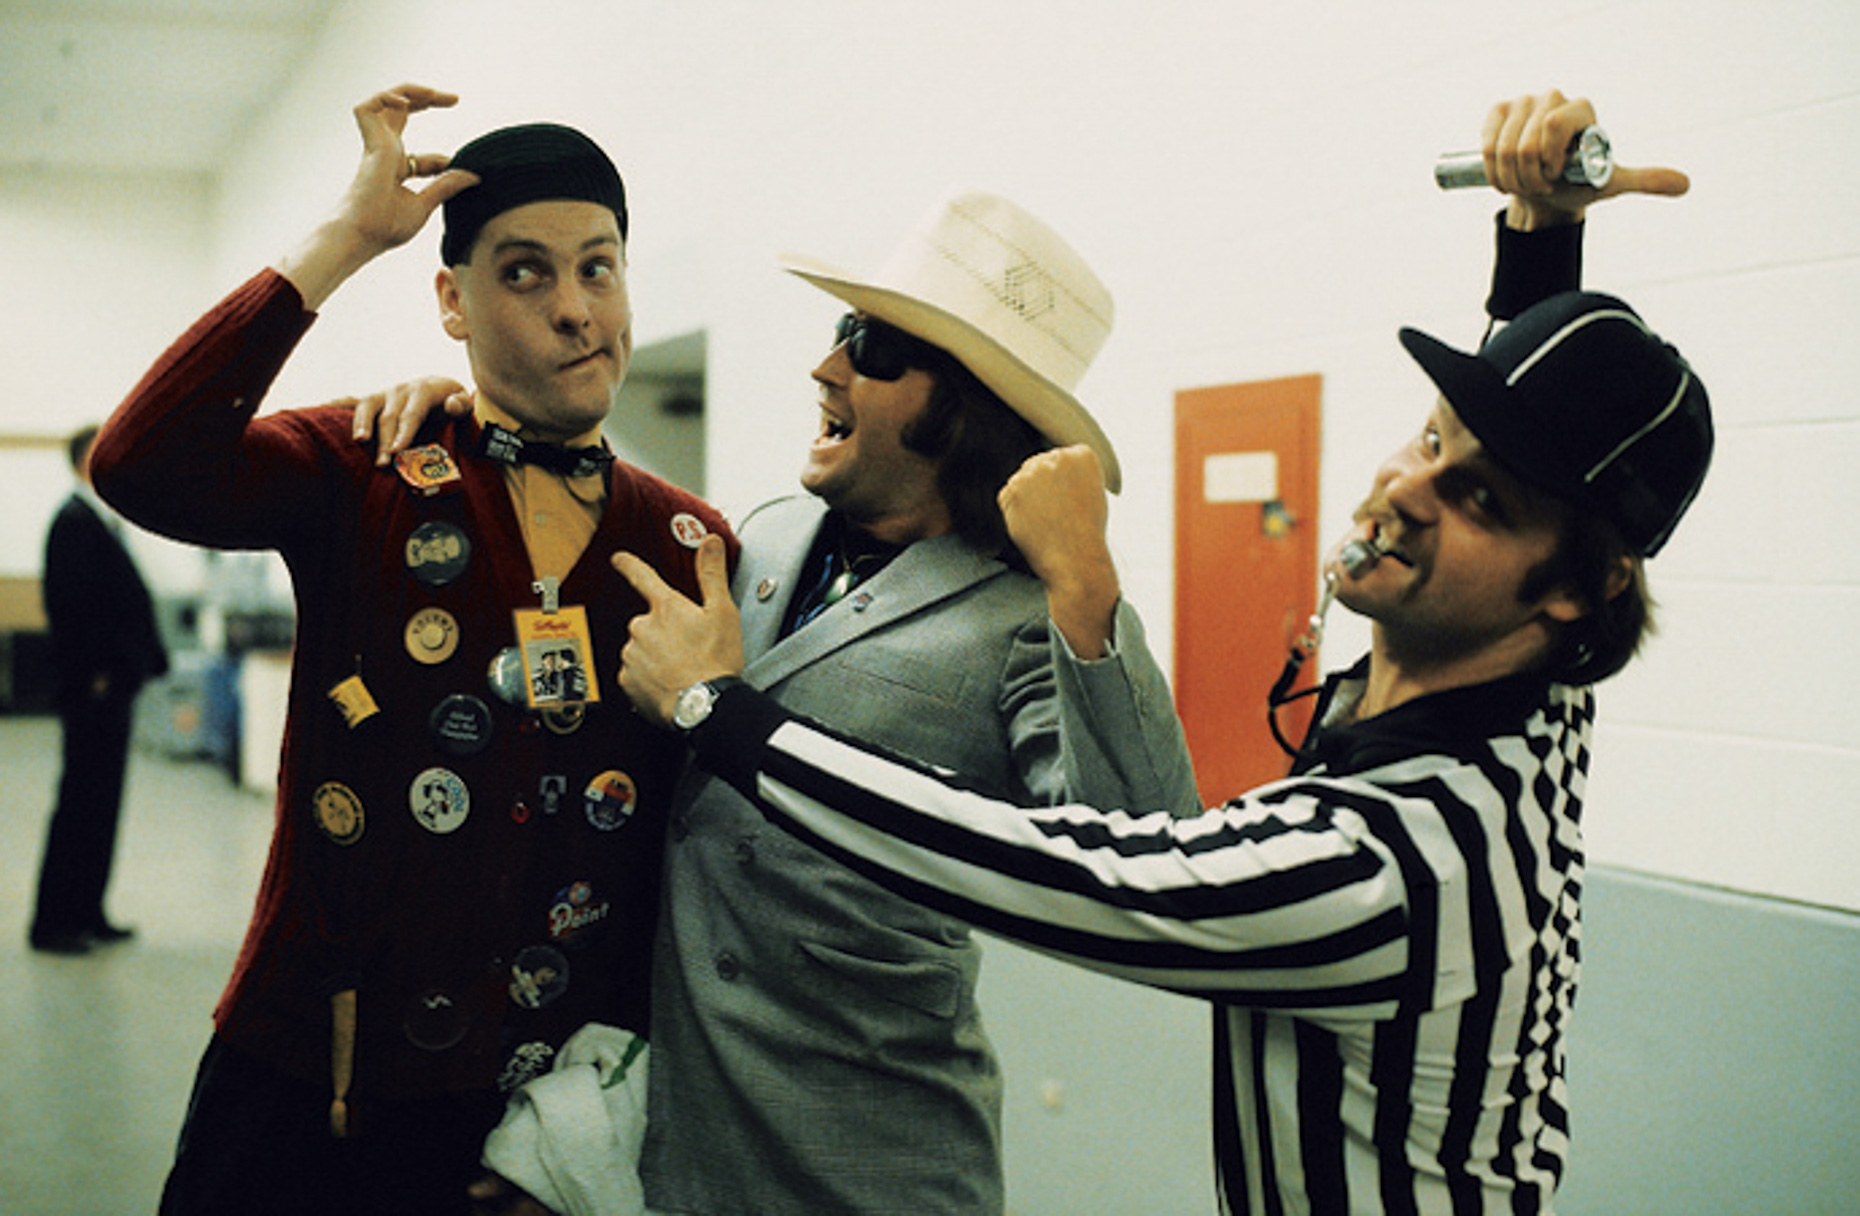 Mick Jones & Cheap Trick Guitarist Rick Nielson with _Referee,_ Cotton Bowl, Dallas, TX, June 21, 1980  [Lisa Tanner]_1